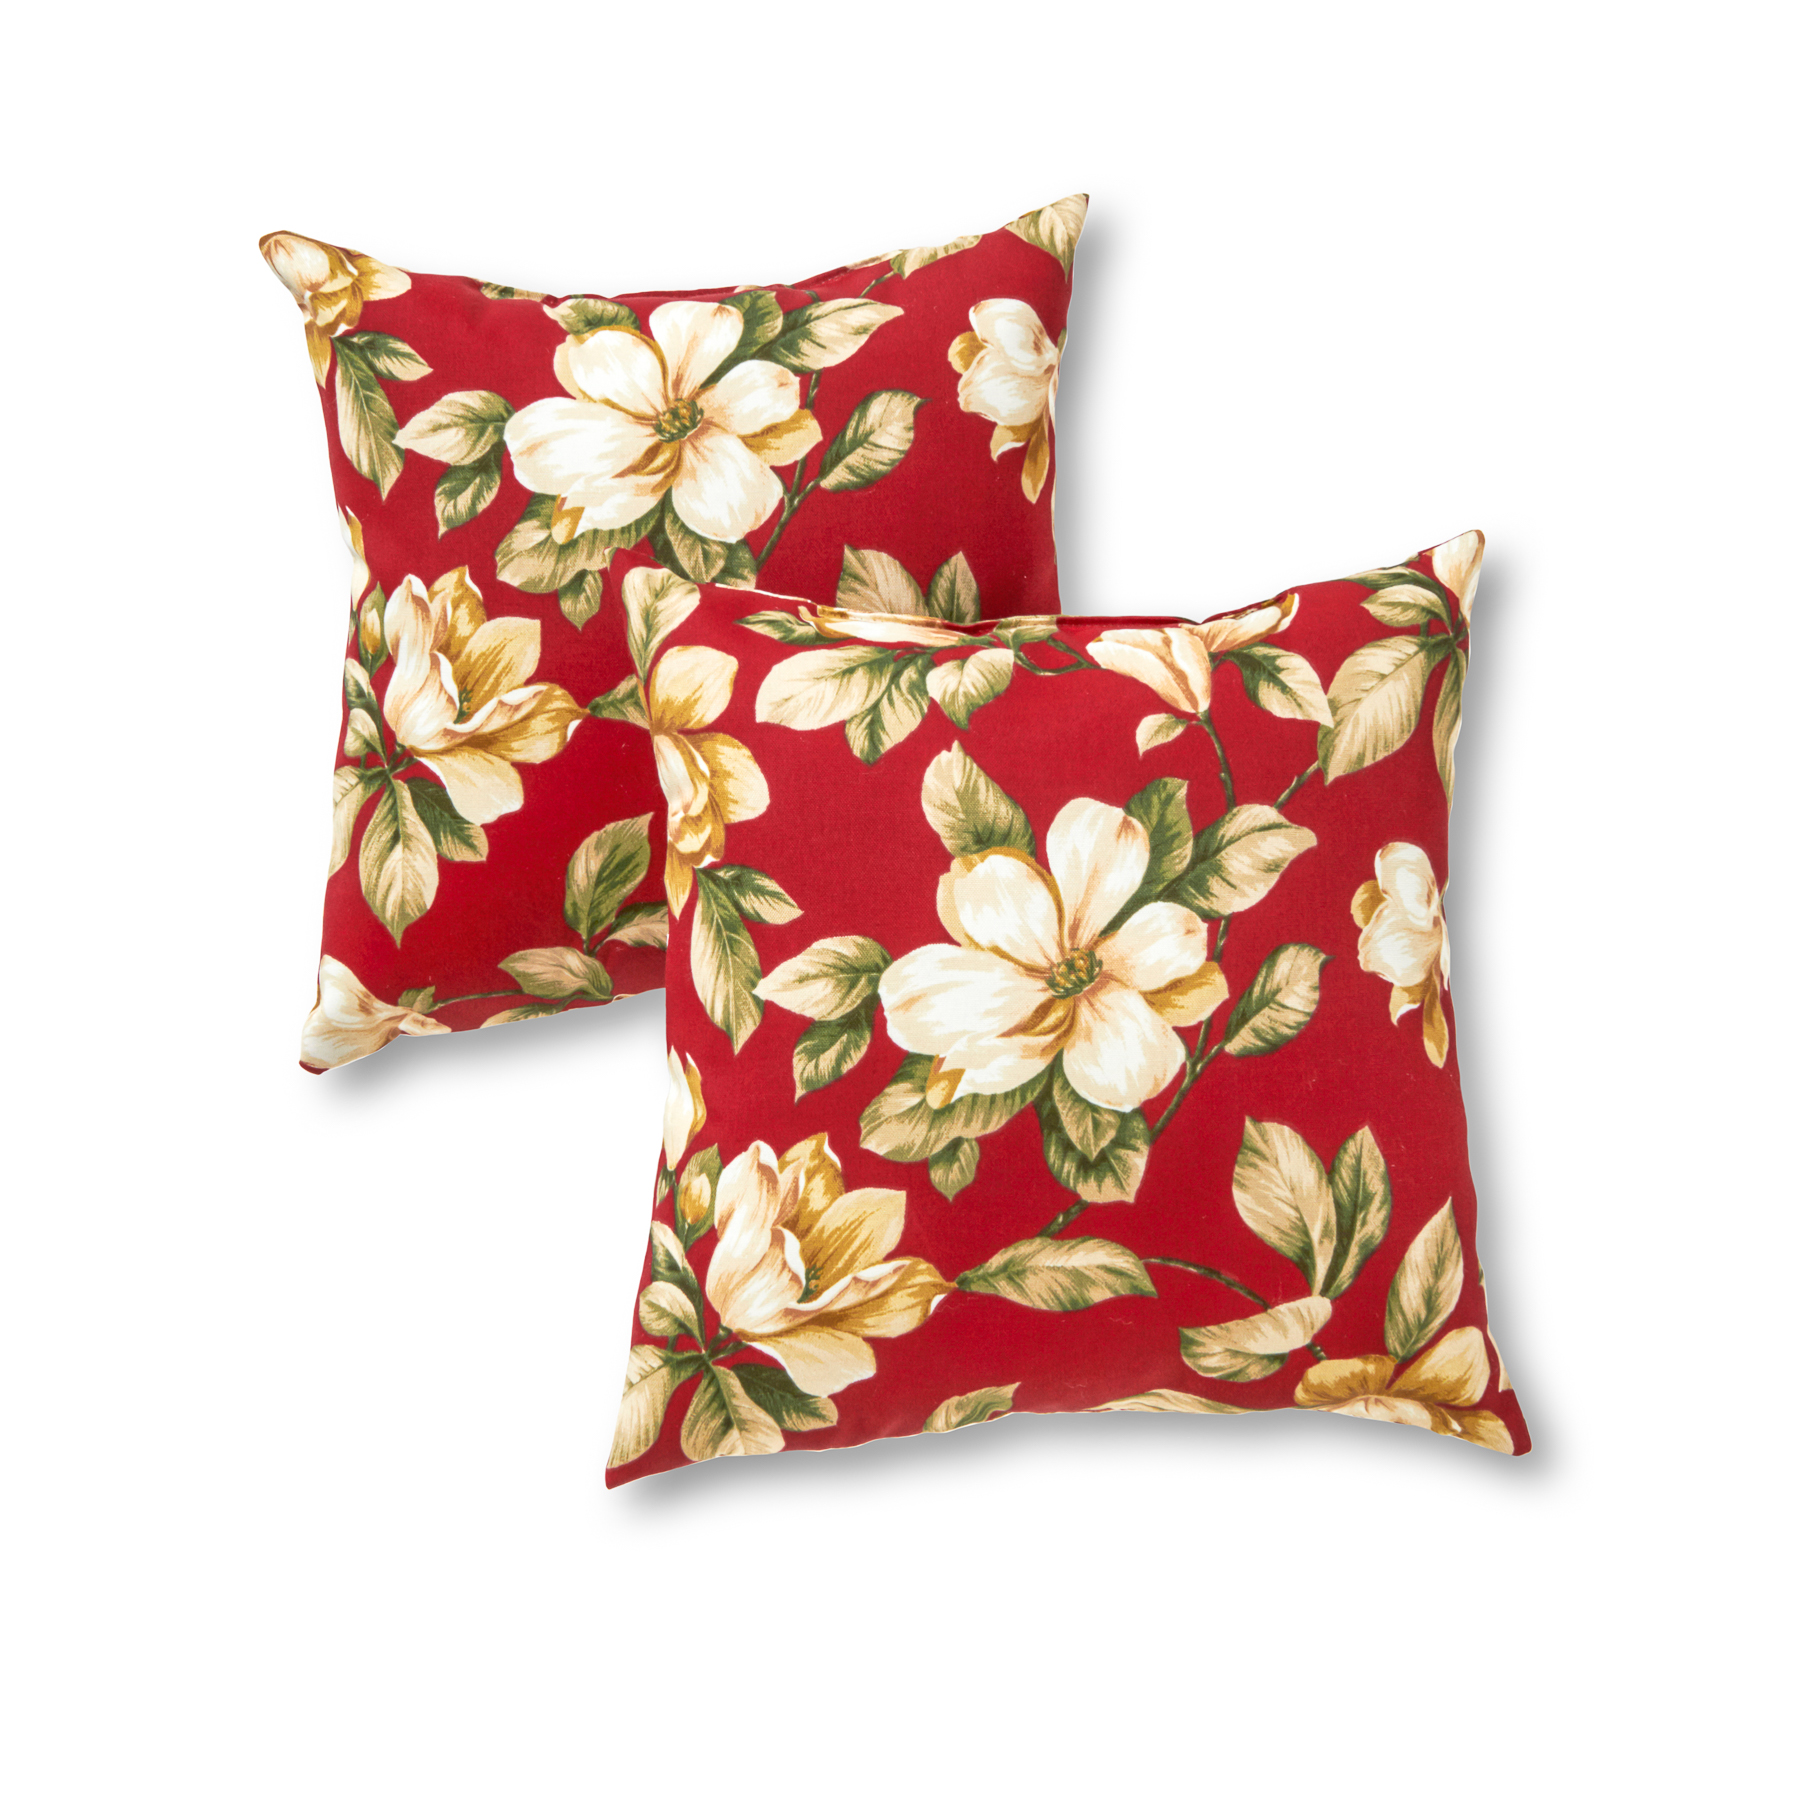 Greendale Home Fashions Roma Floral Outdoor Accent Pillow, Set of 2